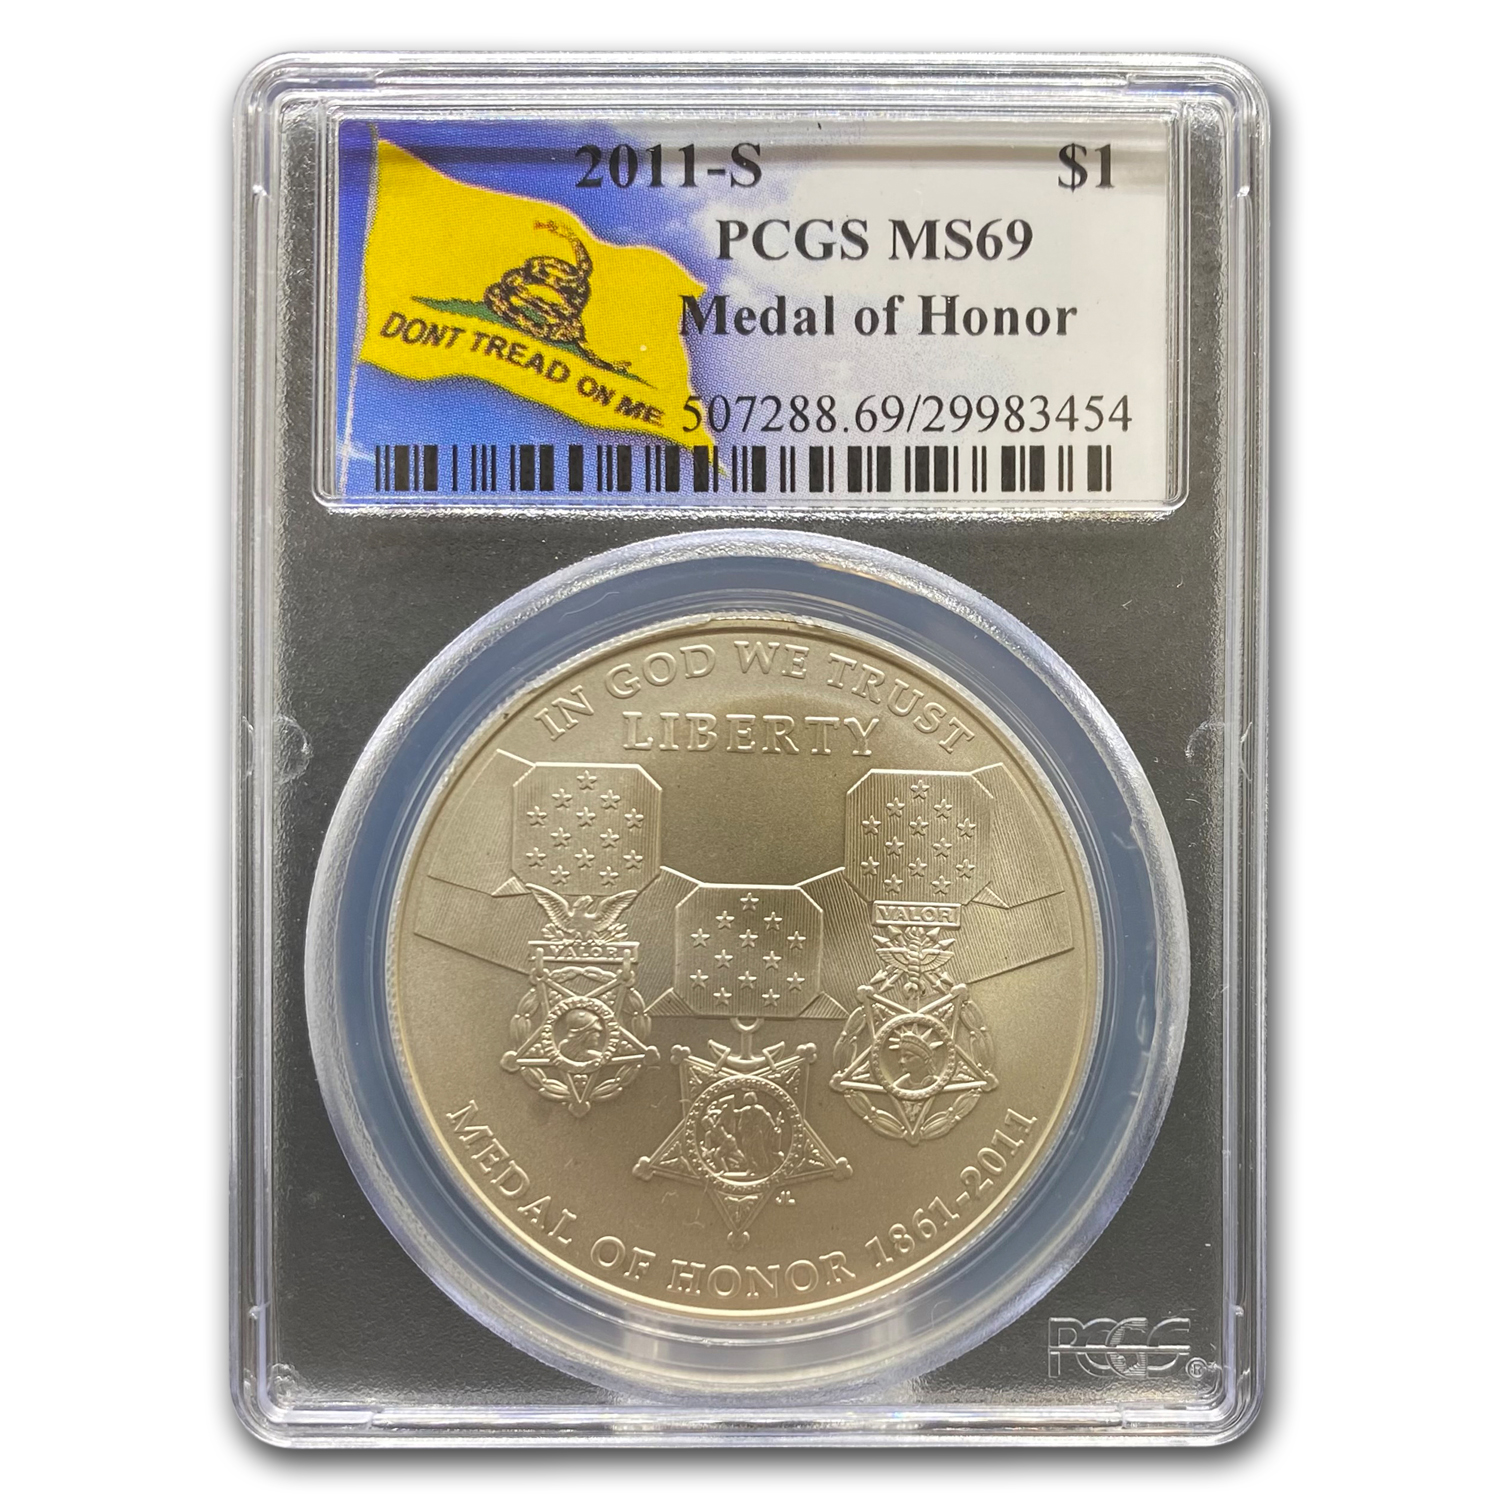 2011-S Medal of Honor $1 Silver Commem MS-69 PCGS